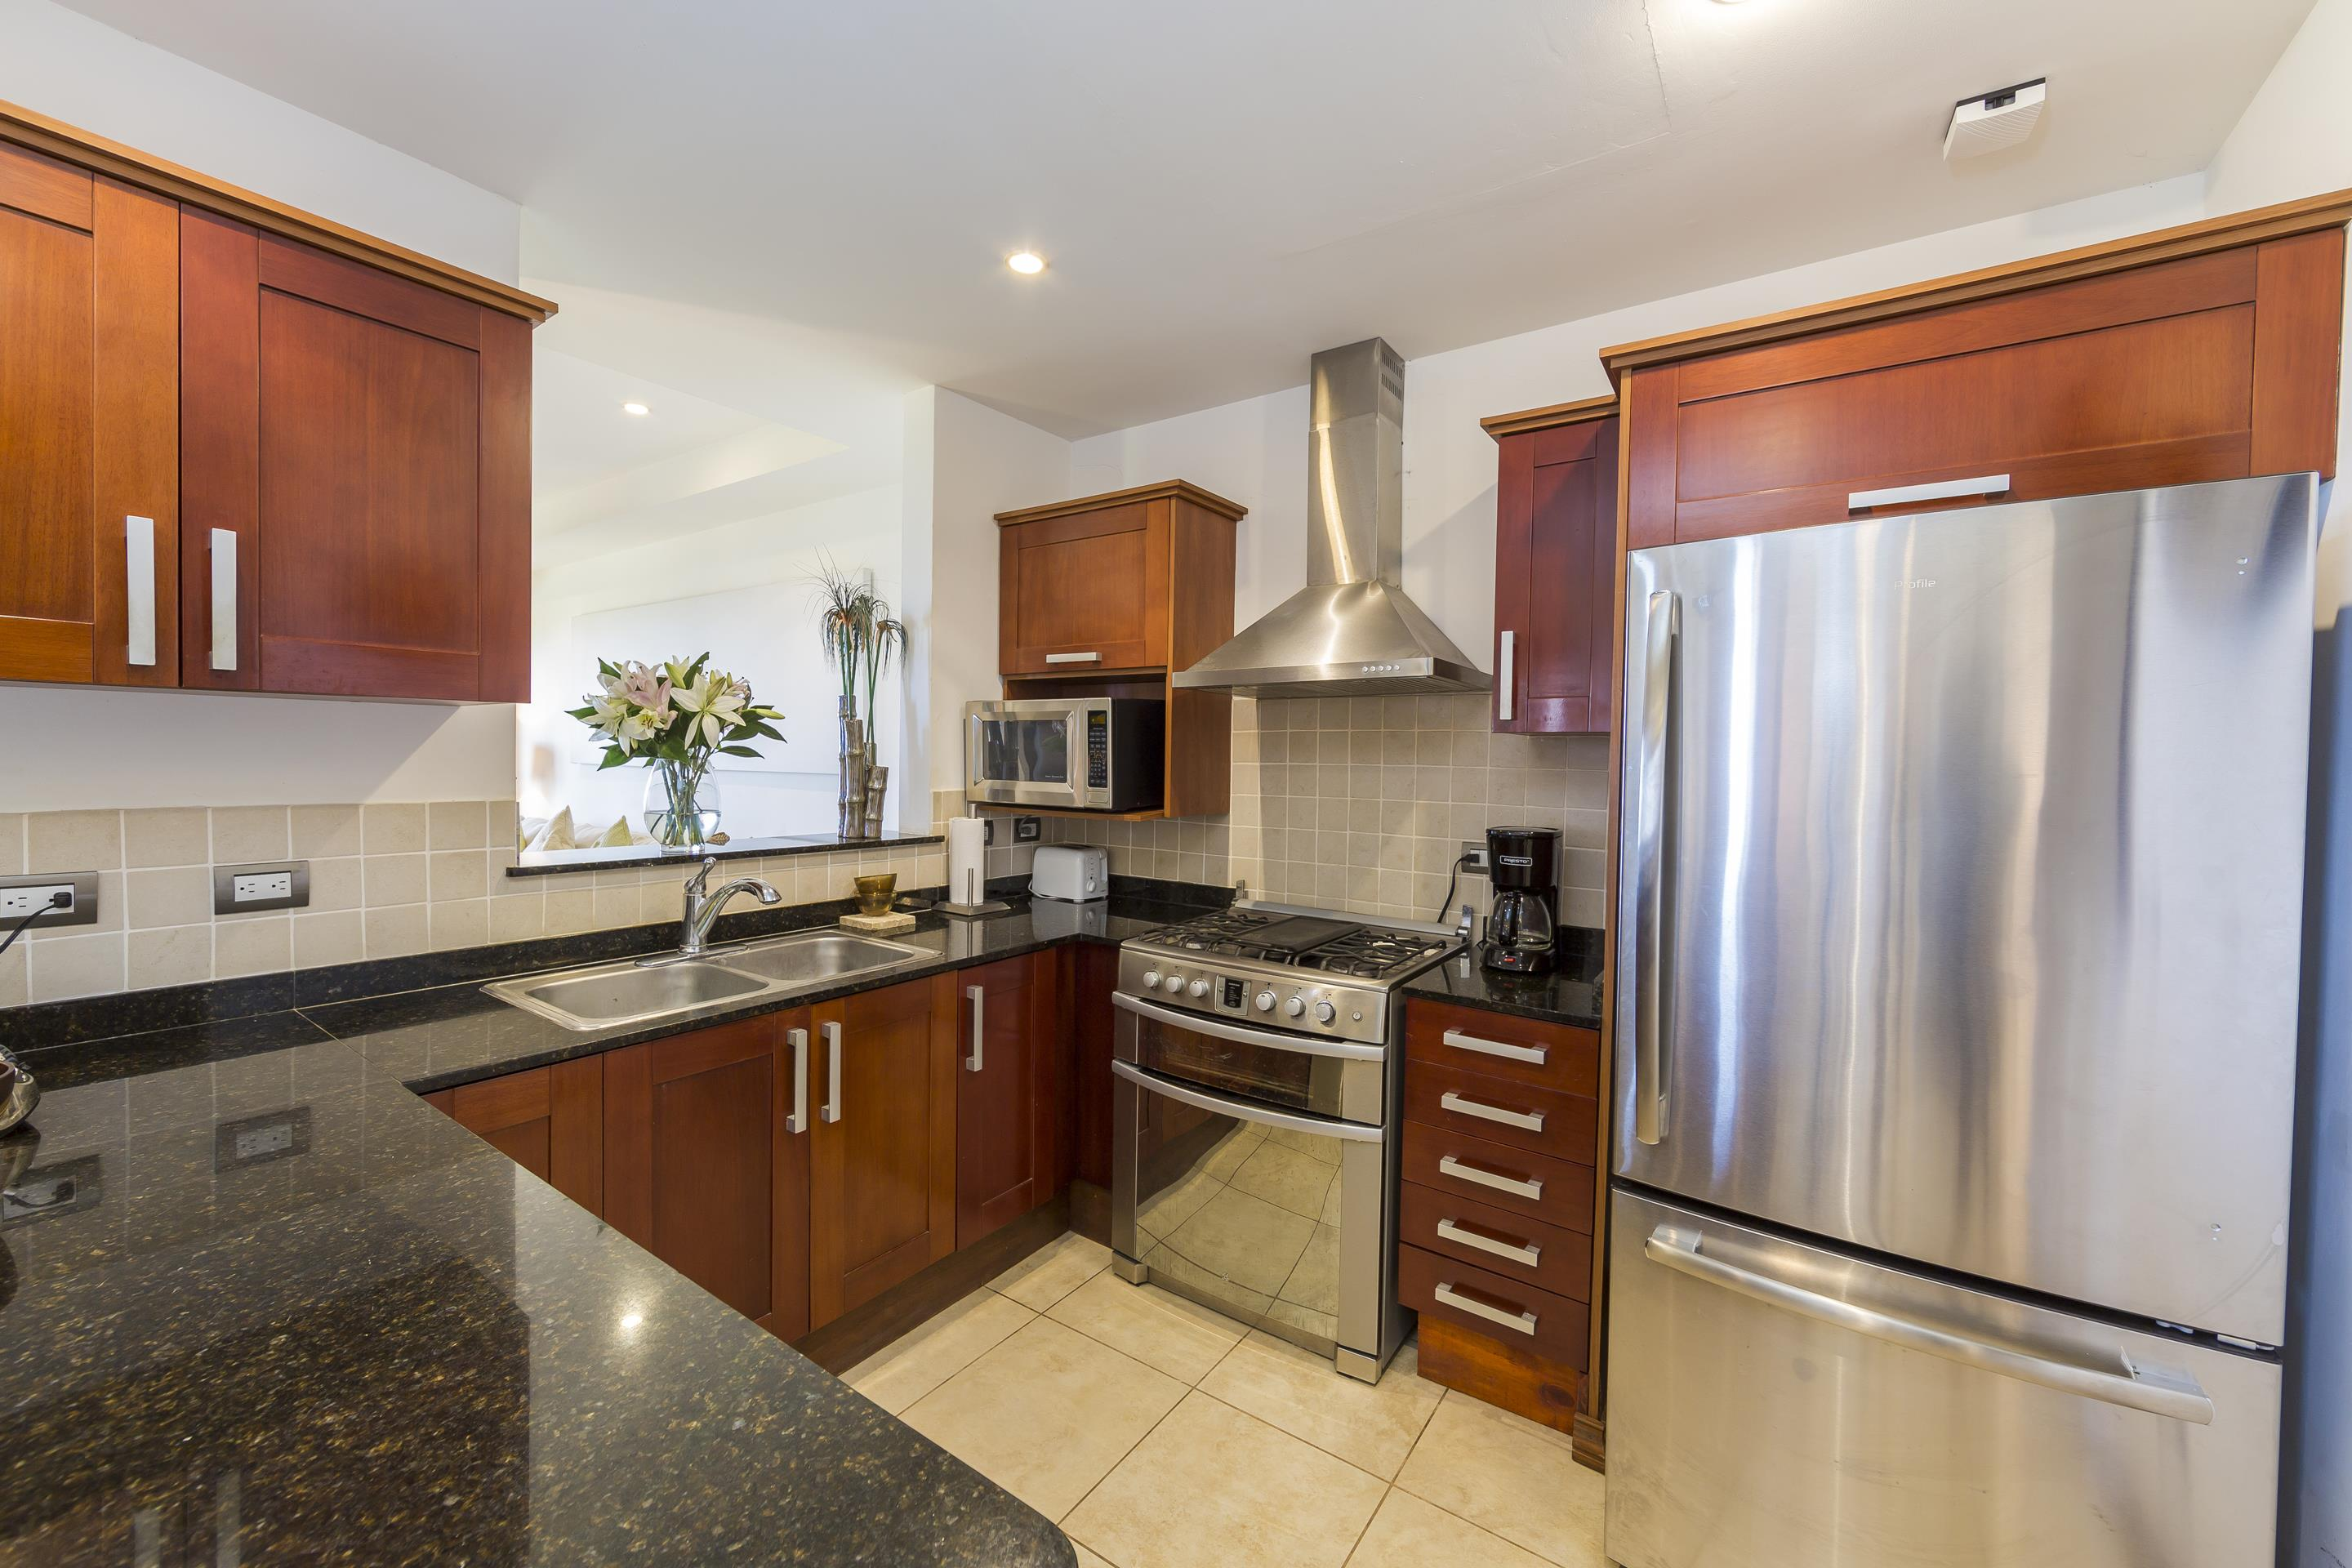 Granite counter tops and natural wood cabinets